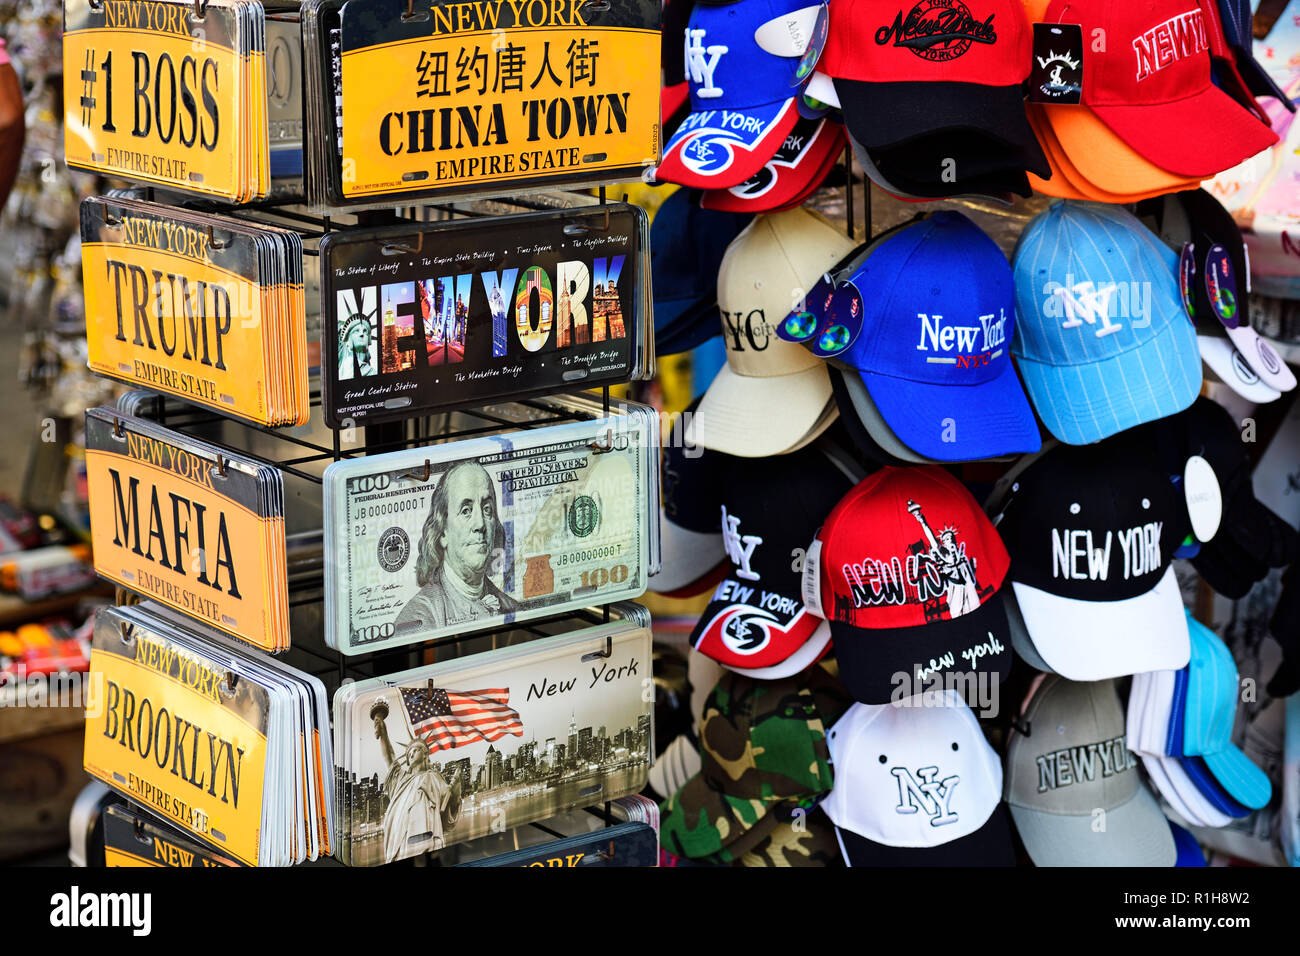 Souvenir Shop New York City Immagini   Souvenir Shop New York City ... 2d4c8dfb9ef6